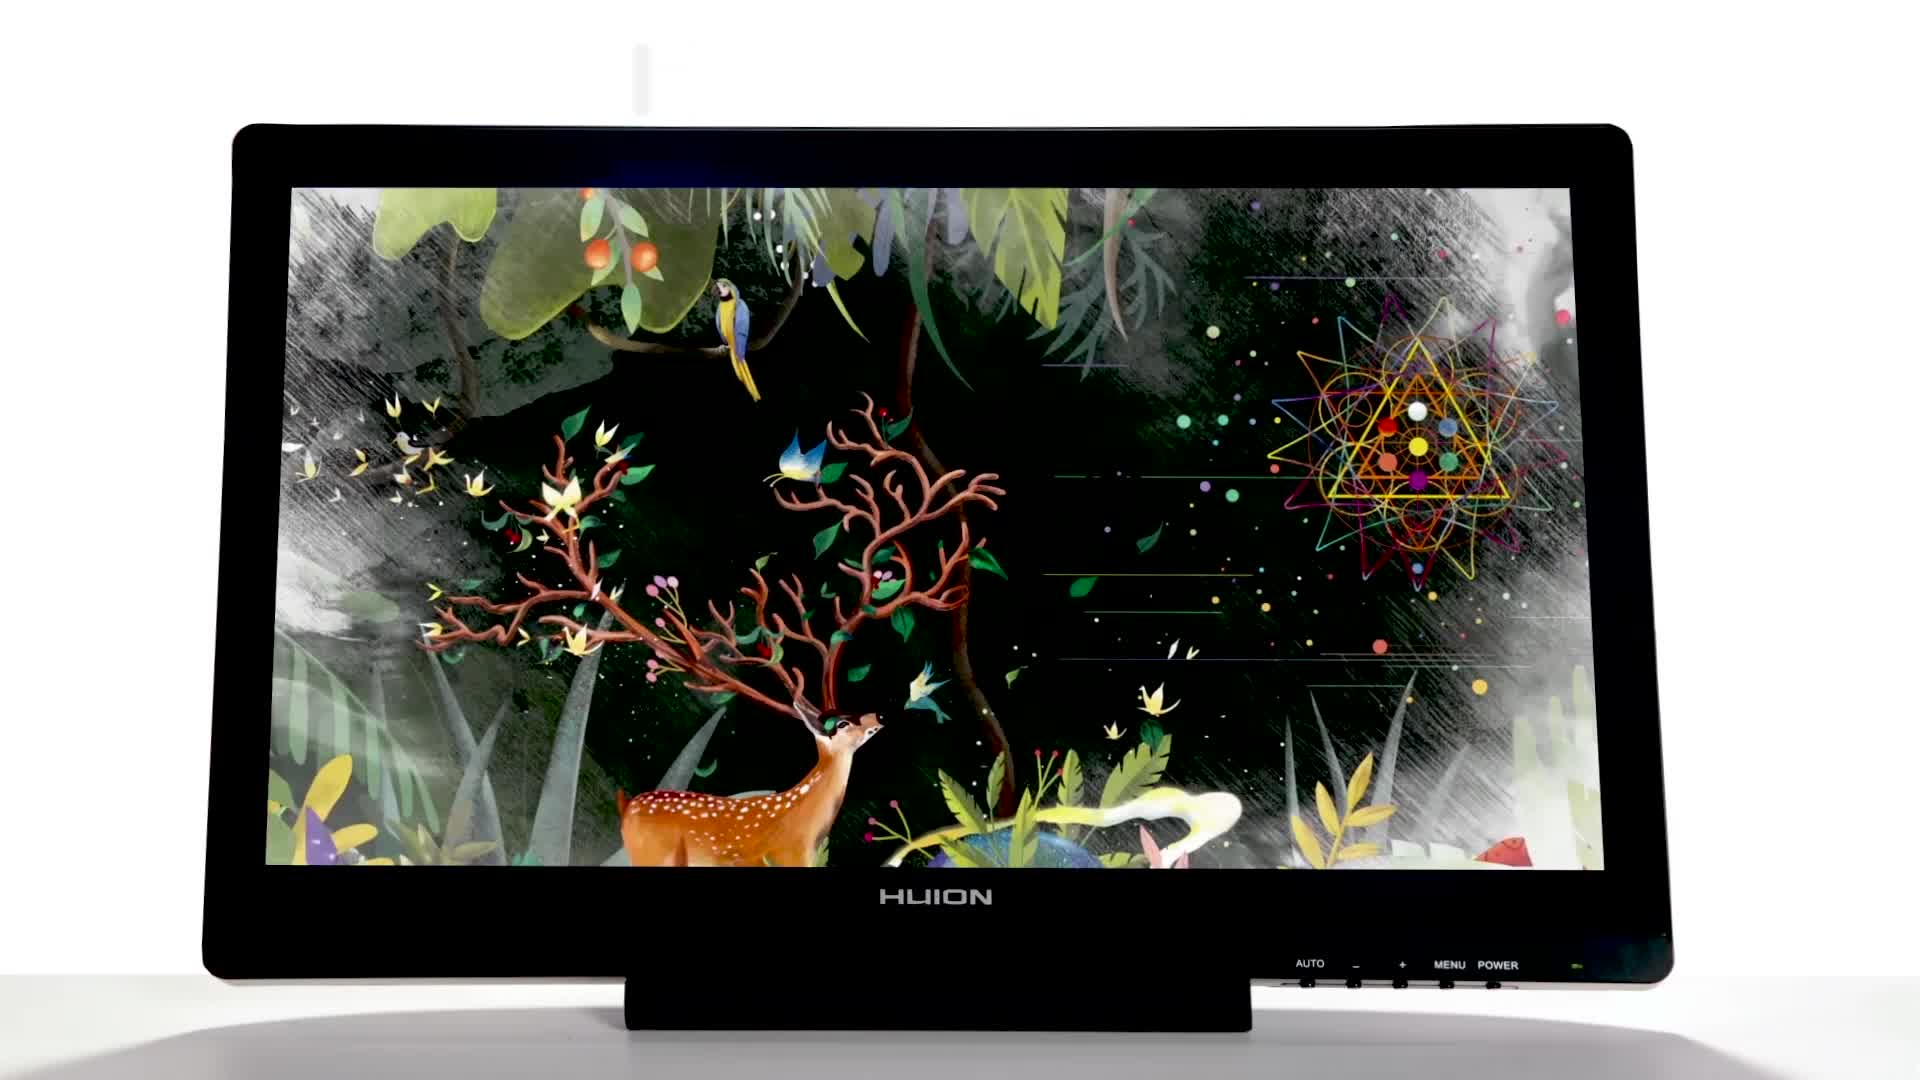 Huion Kamvas Gt-191 19 5 Inch Ips Lcd Pen Display Monitor 8192 Levels  Graphics Digital Pen Touch Monitor - Buy Huion Kamvas Gt-191,Pen Touch